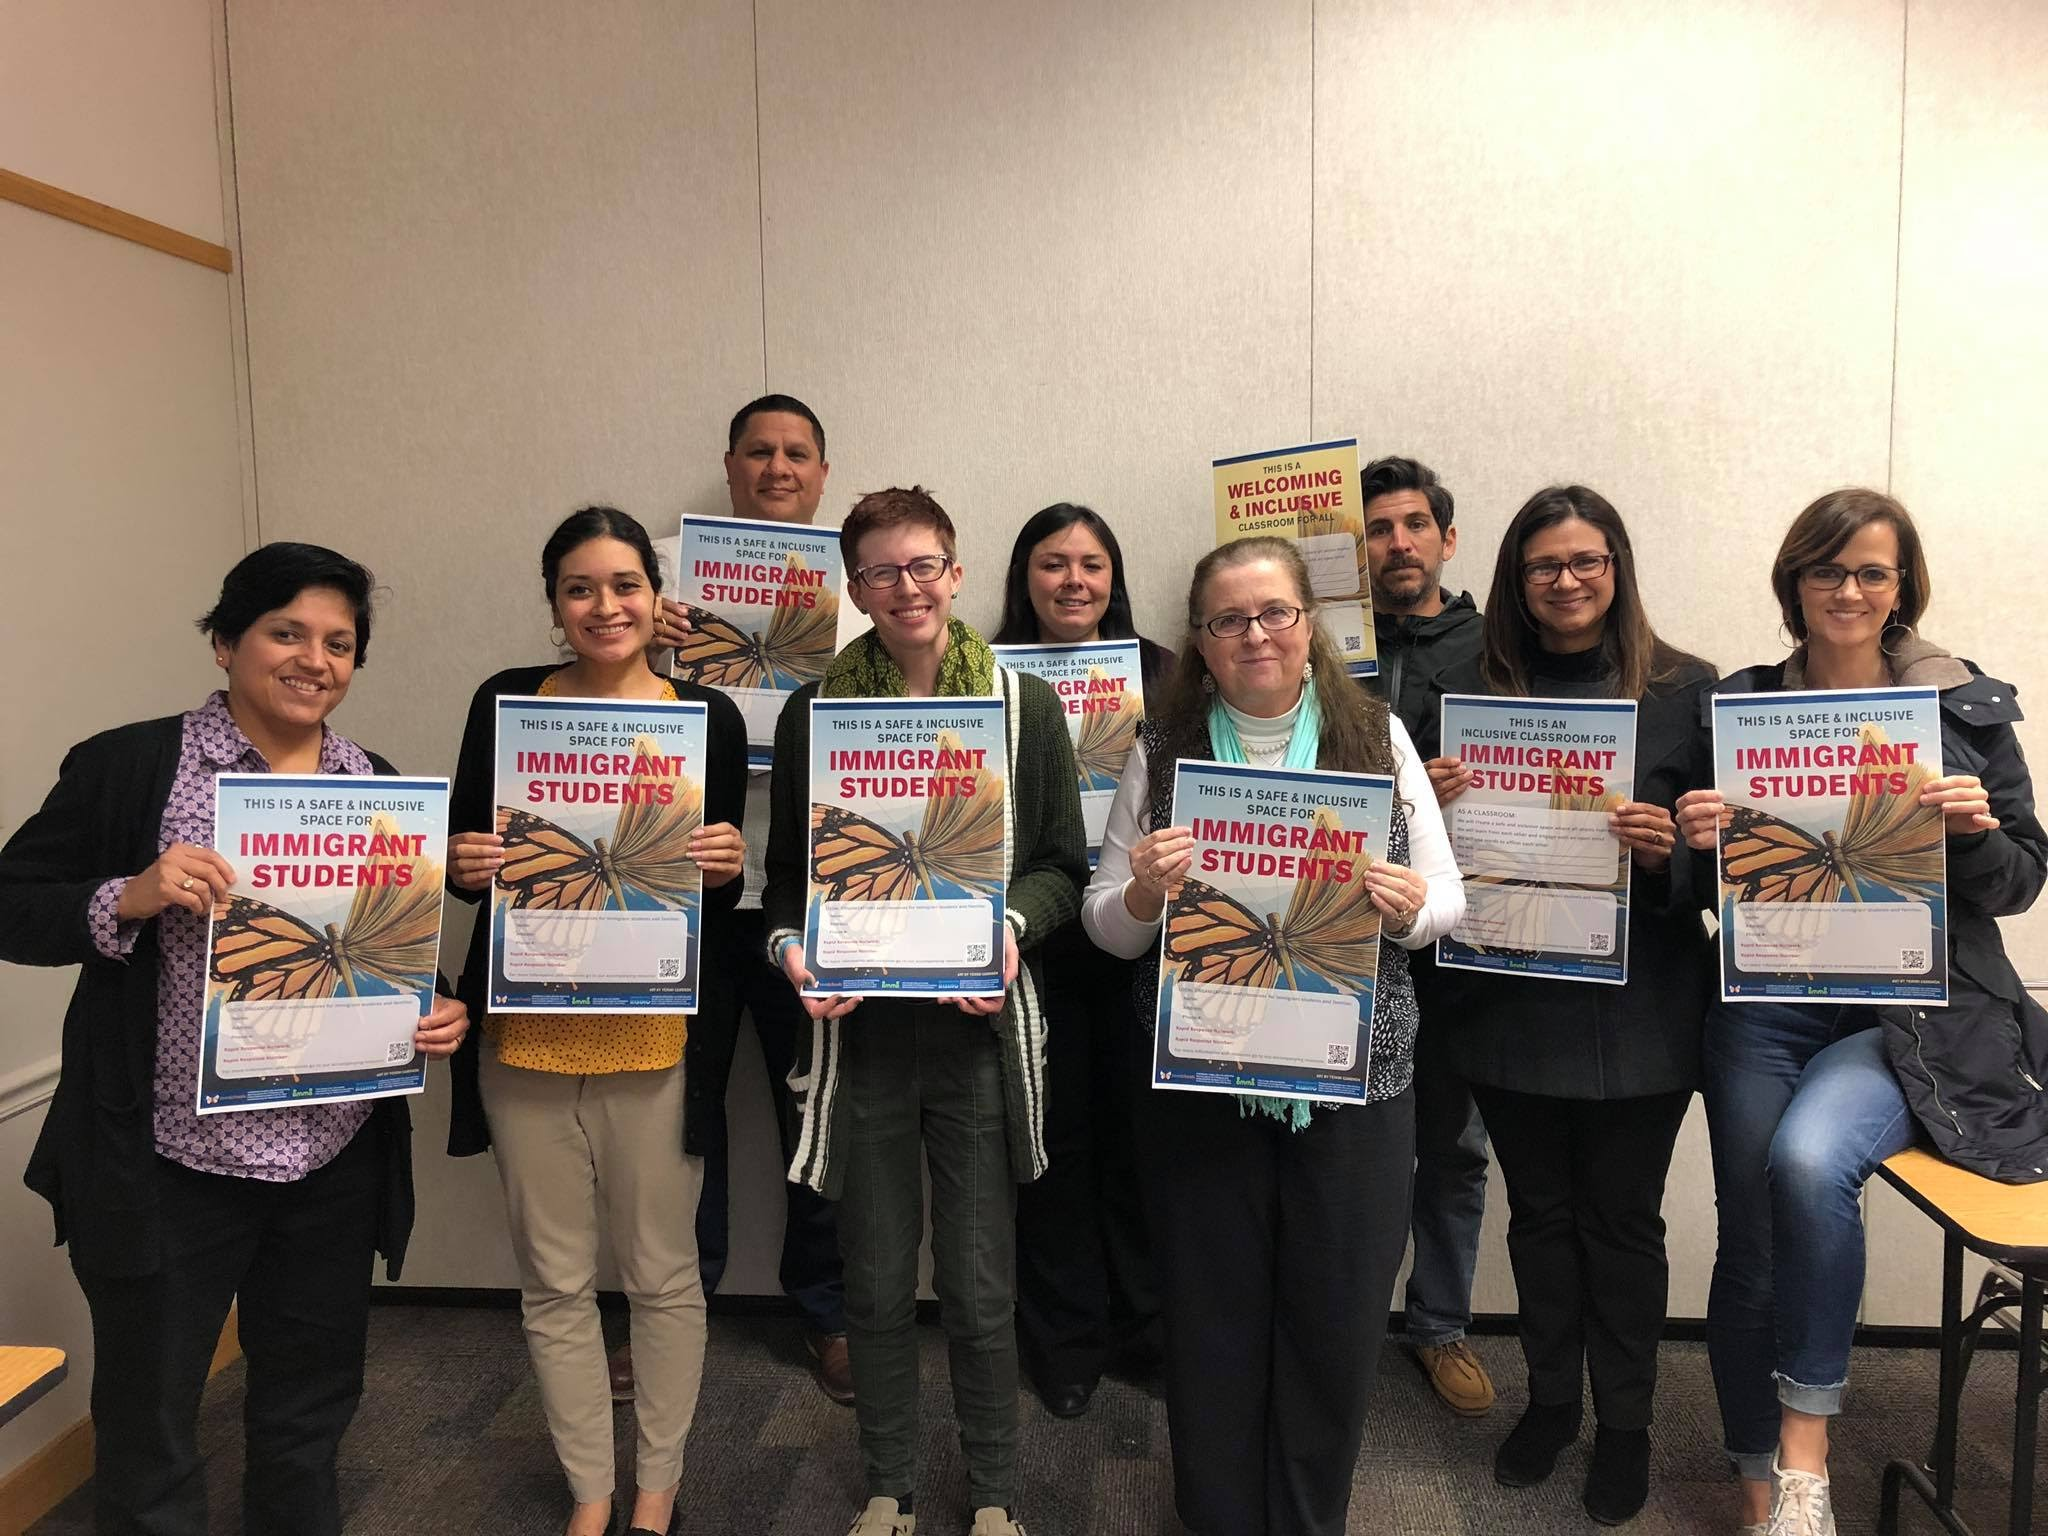 Left Behind: How school districts can support English Learner and Immigrant Students during COVID-19